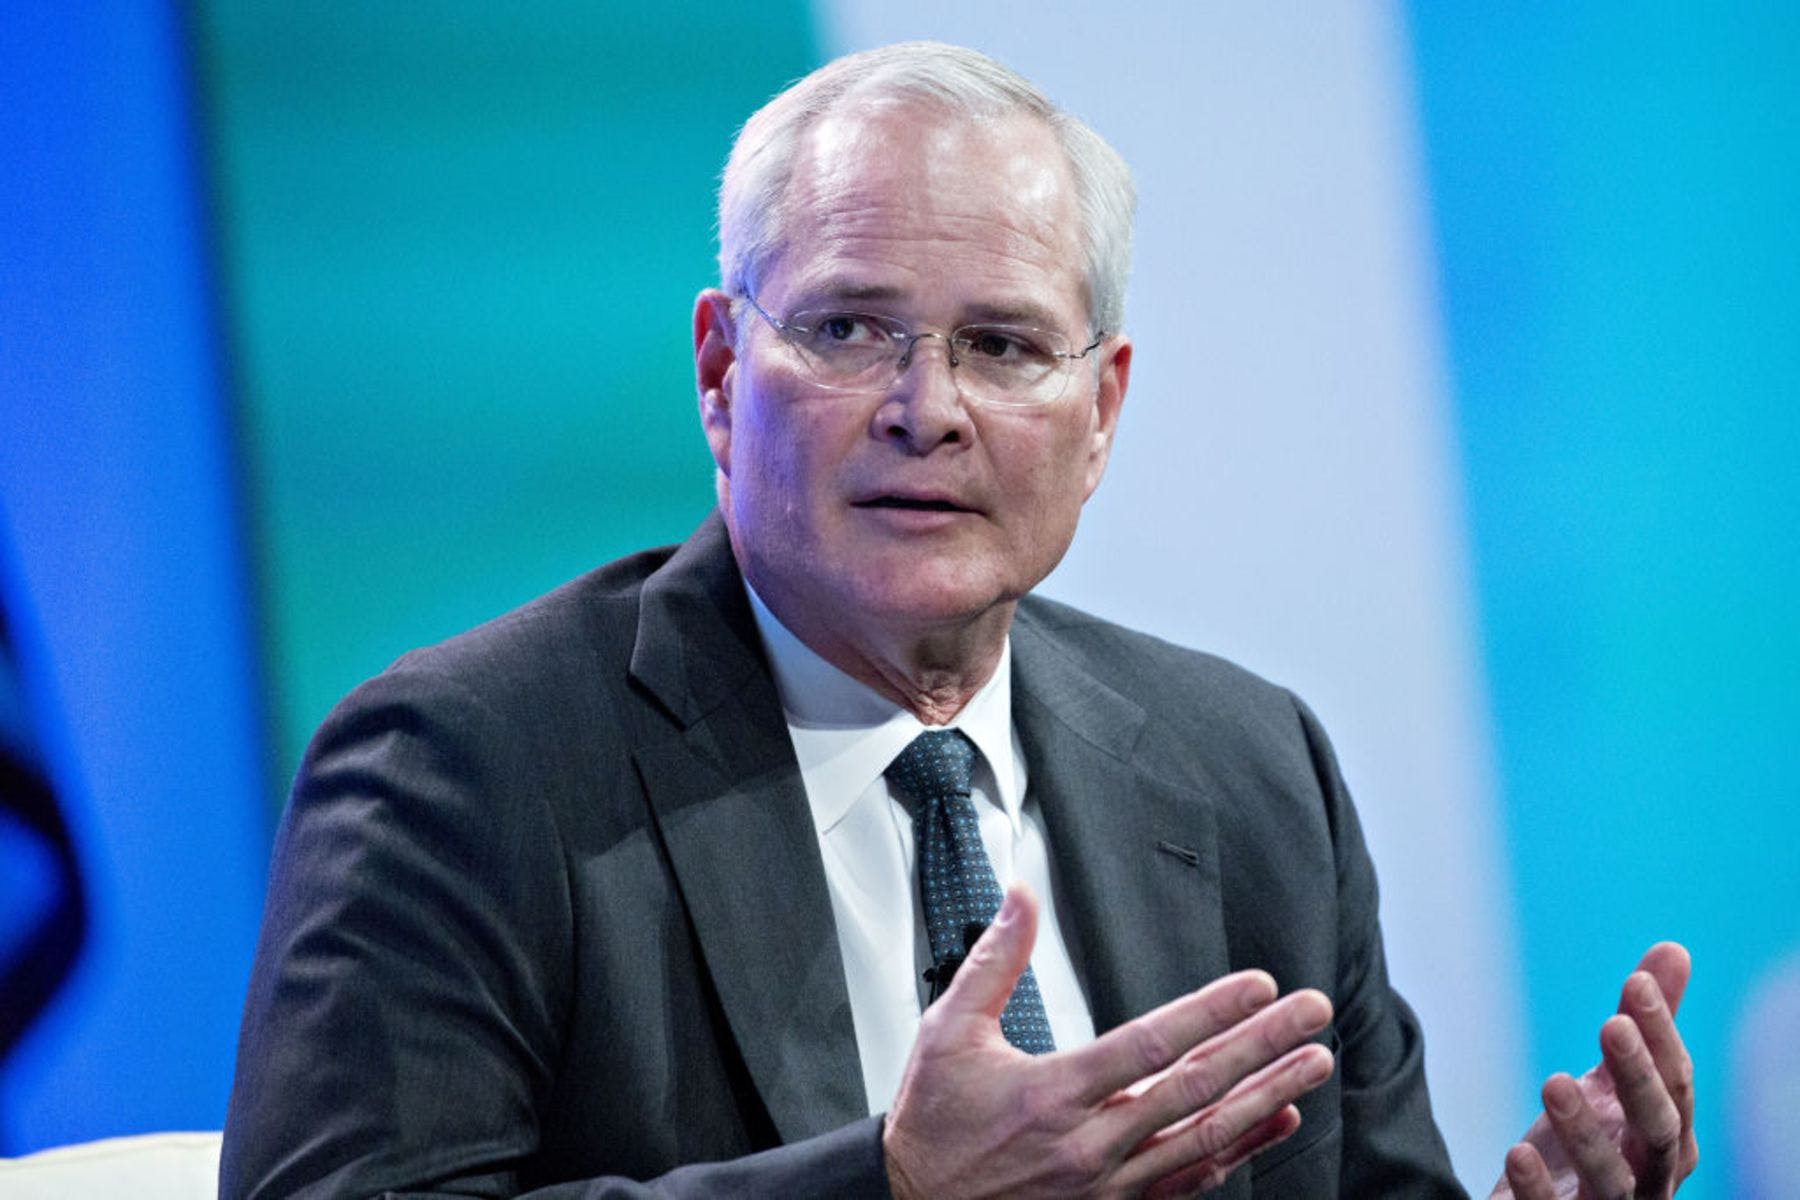 Darren Woods, chairman and chief executive officer of Exxon Mobil Corp., seeming to wonder where his barrels went.